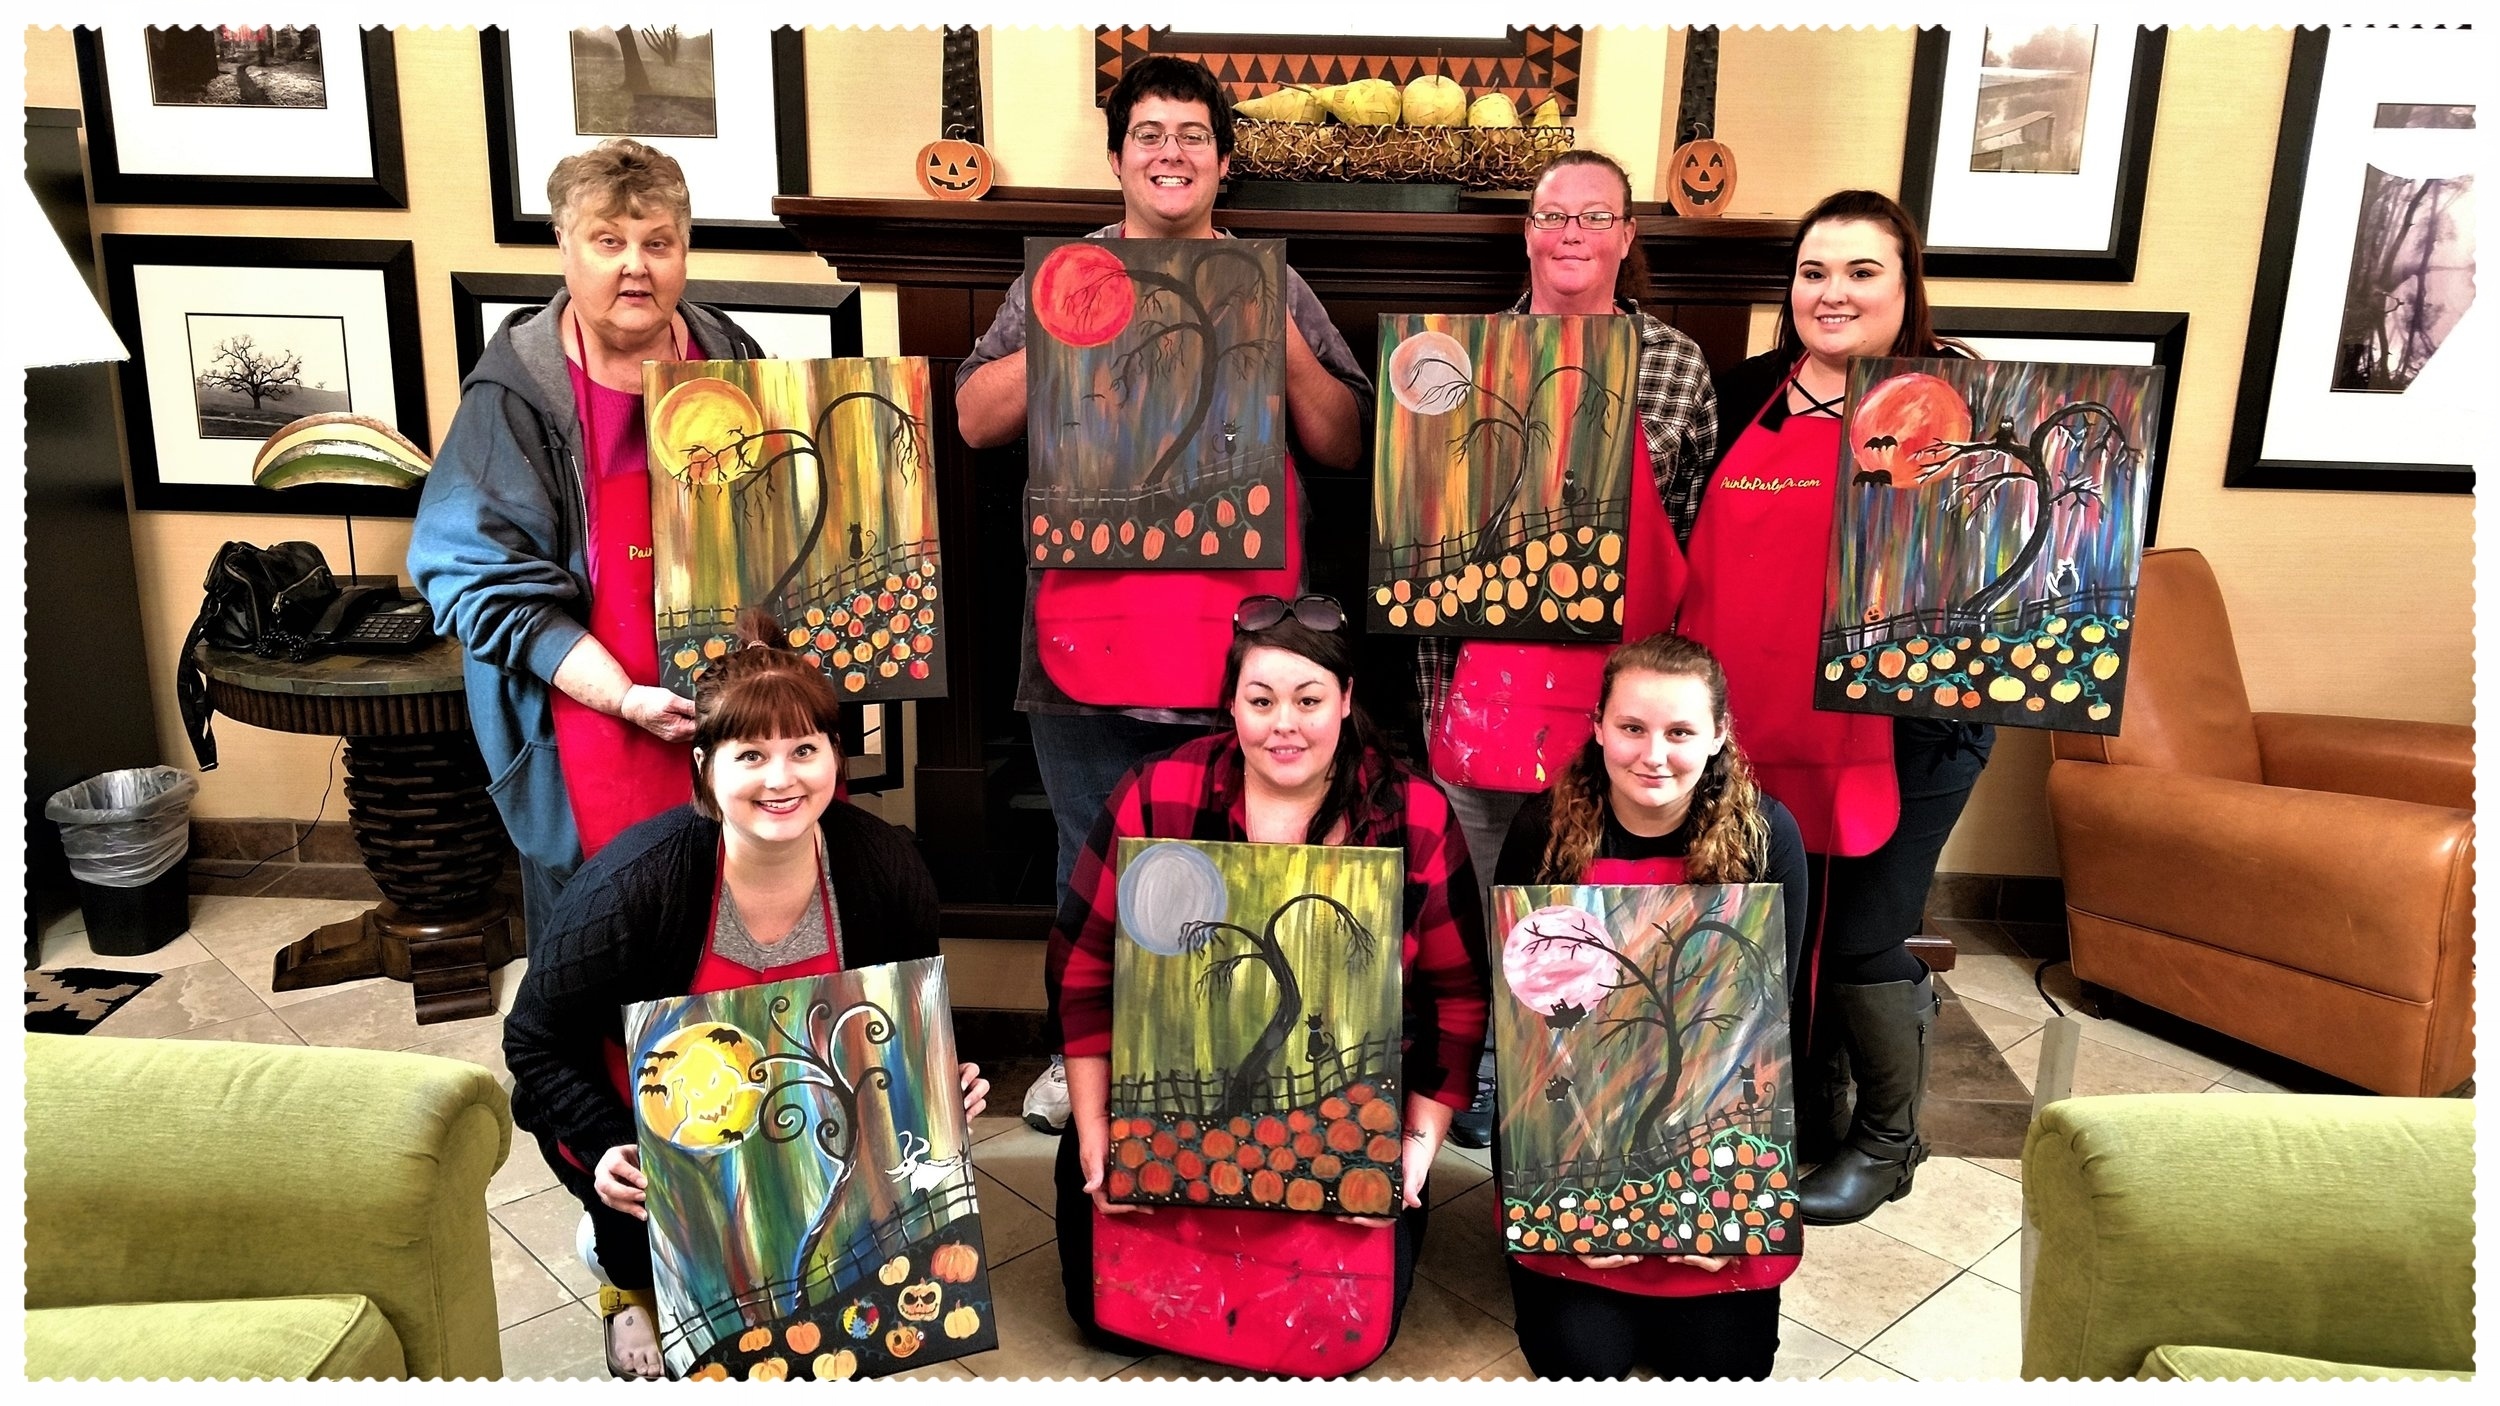 Team Building Painting Party, Phoenix Inn, Albany